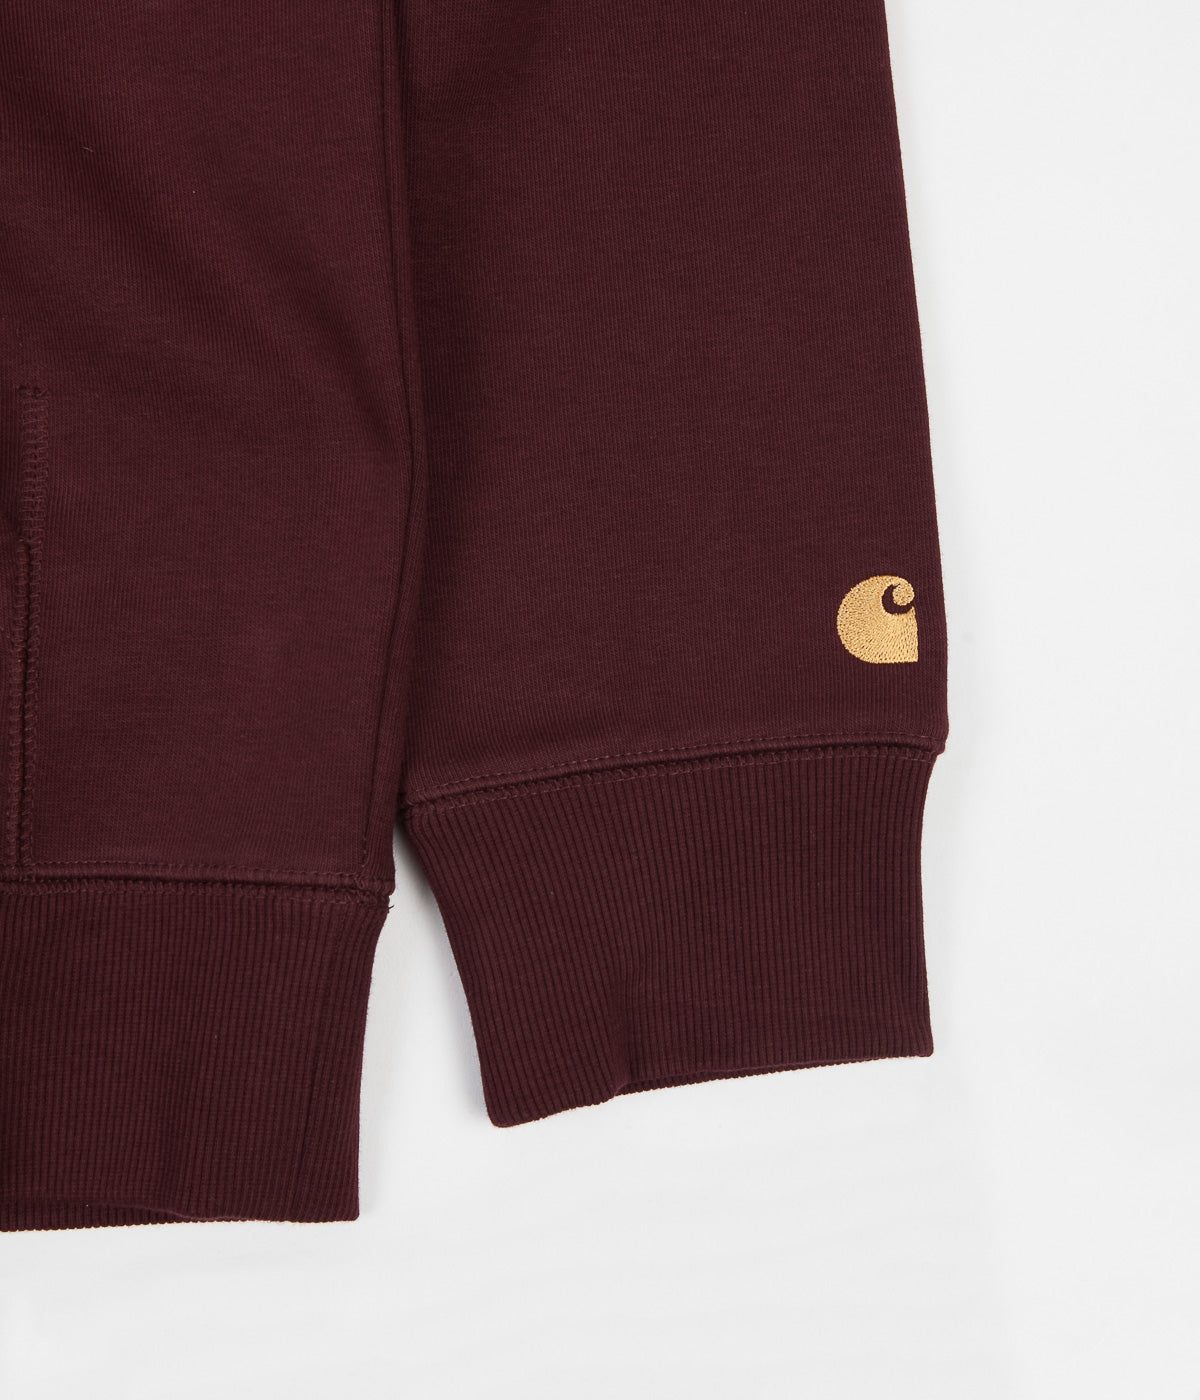 Carhartt Chase Hoodie - Bordeaux / Gold